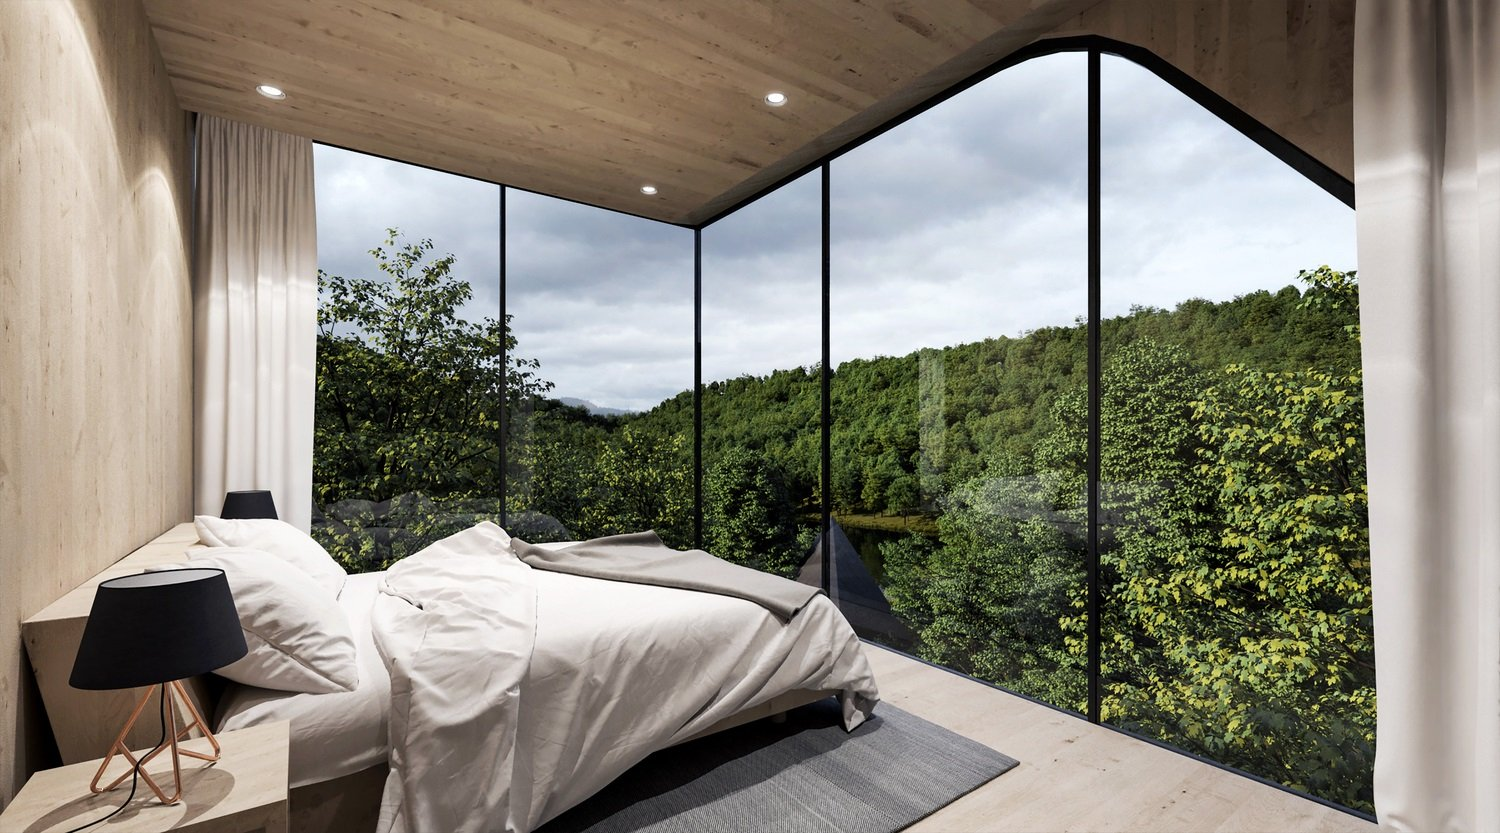 Room View Peter Pichler Architecture